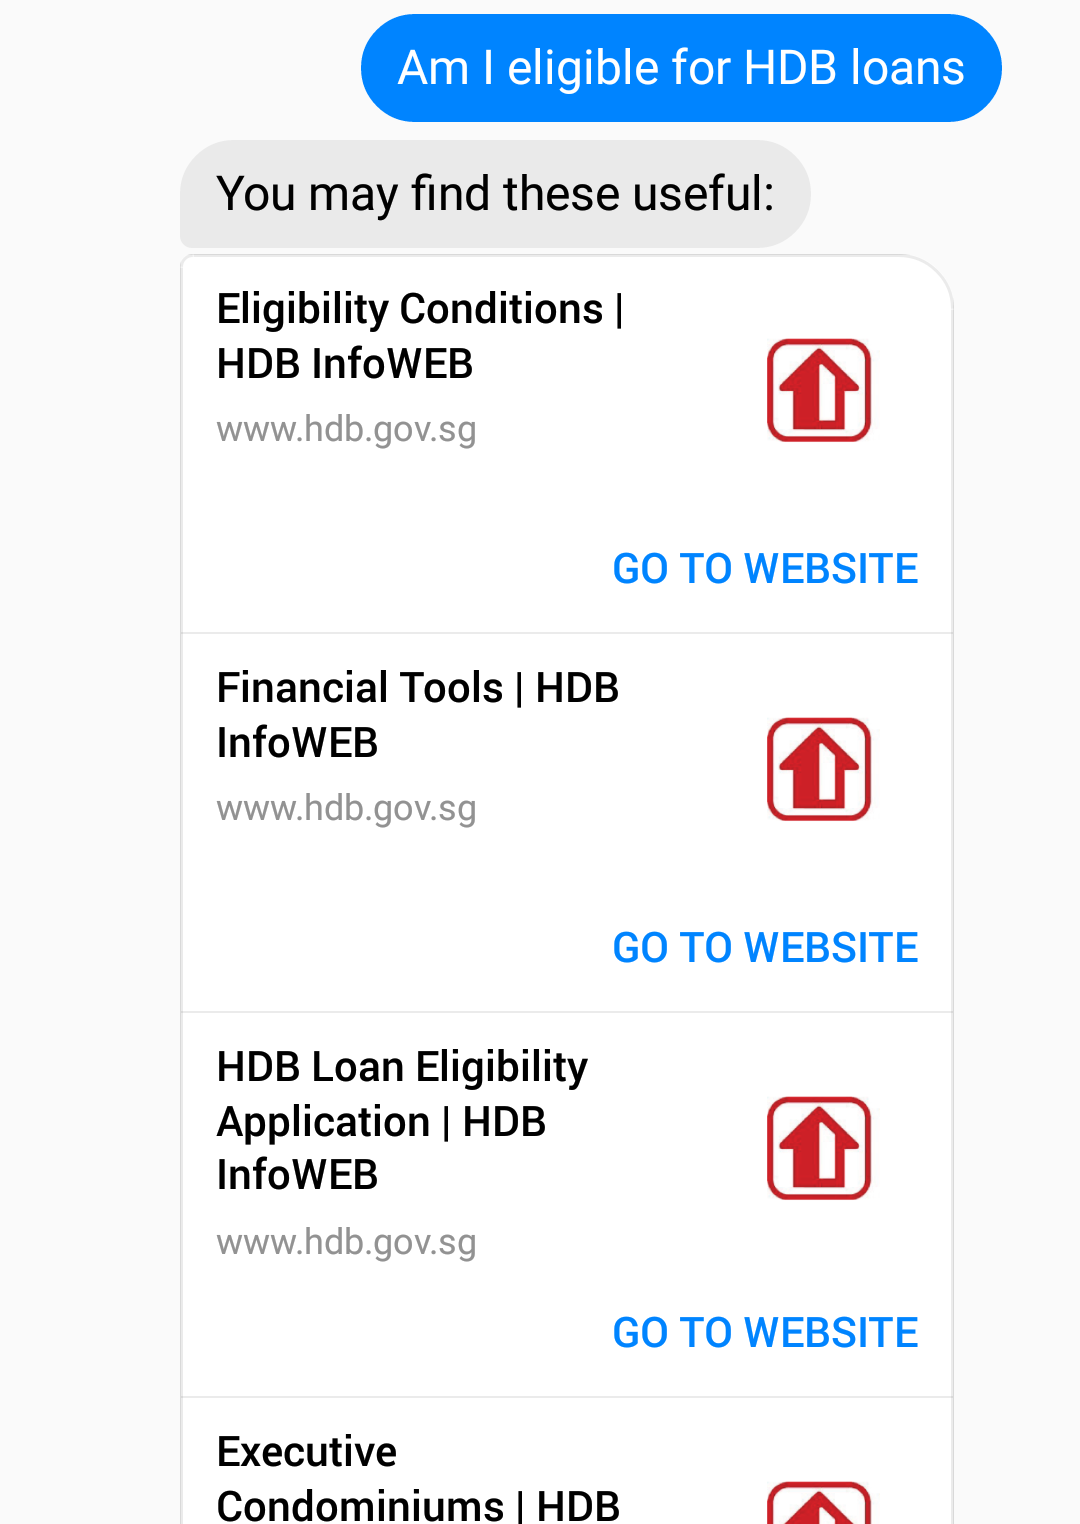 Design features hdb infoweb - We Used A List Design So That Users Can Choose The Most Relevant Result Site To Them When Asking A Question Since Each Government Organisation Keeps Its